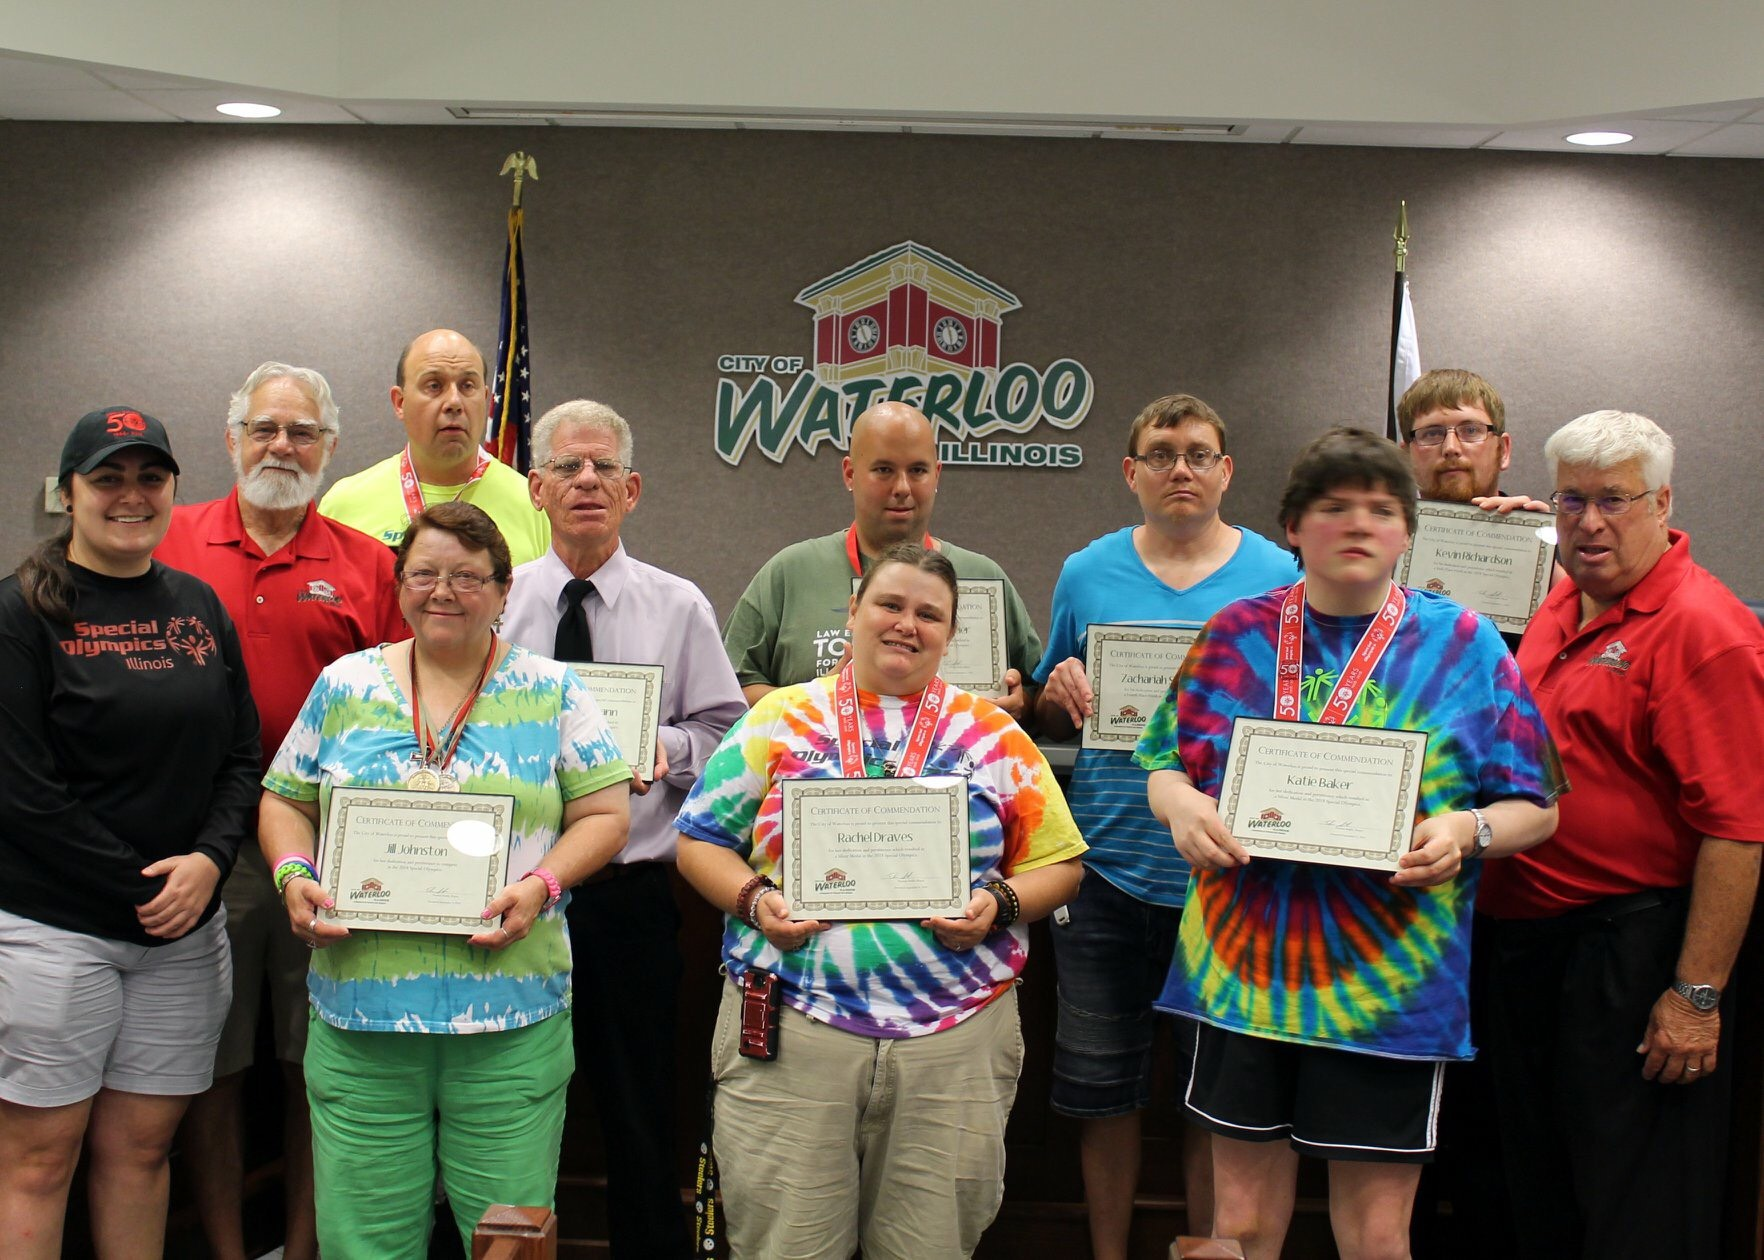 Special Olympics group getting certificate.